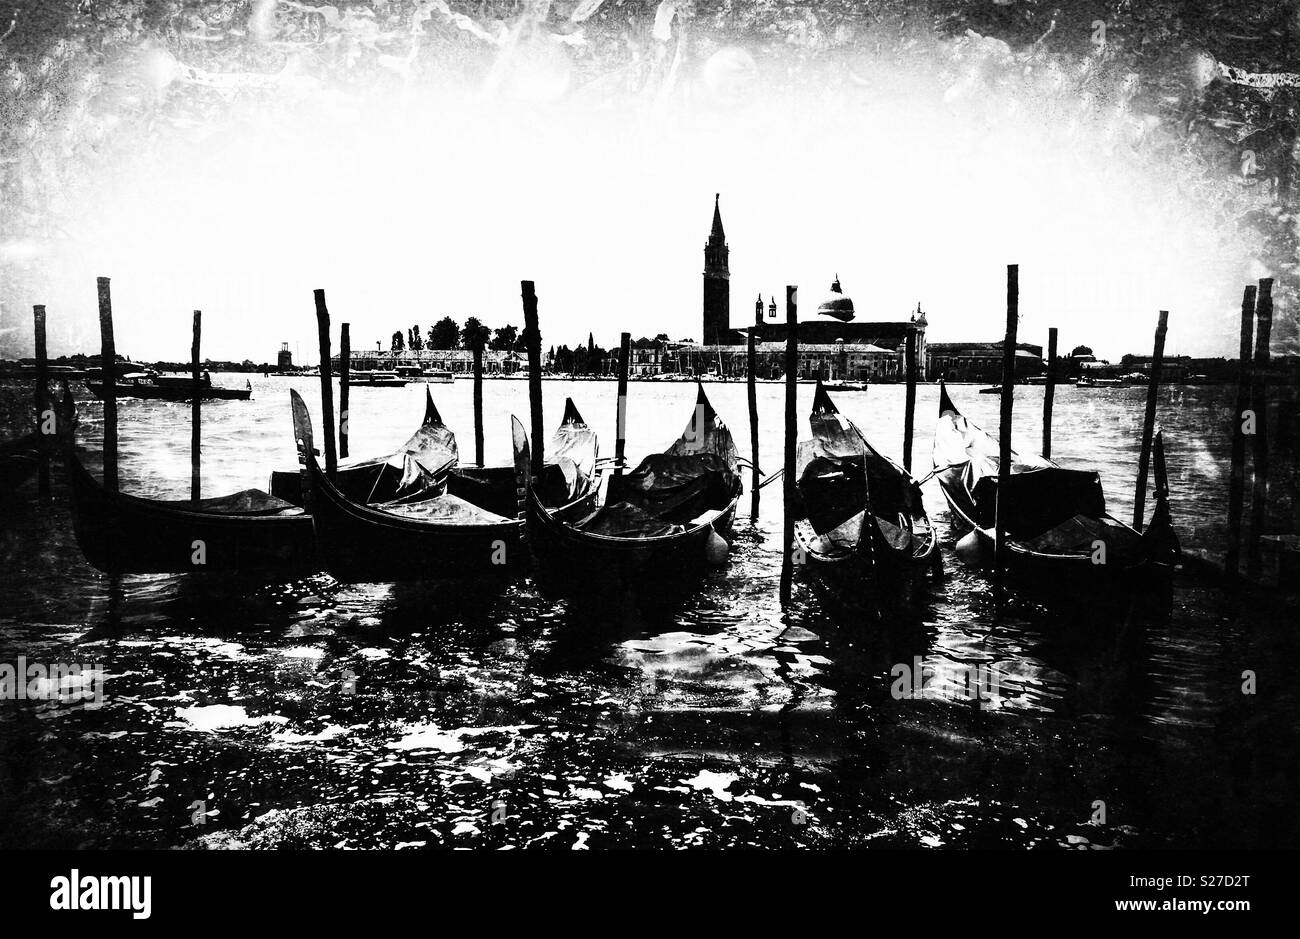 Gondolas in Venice - Stock Image